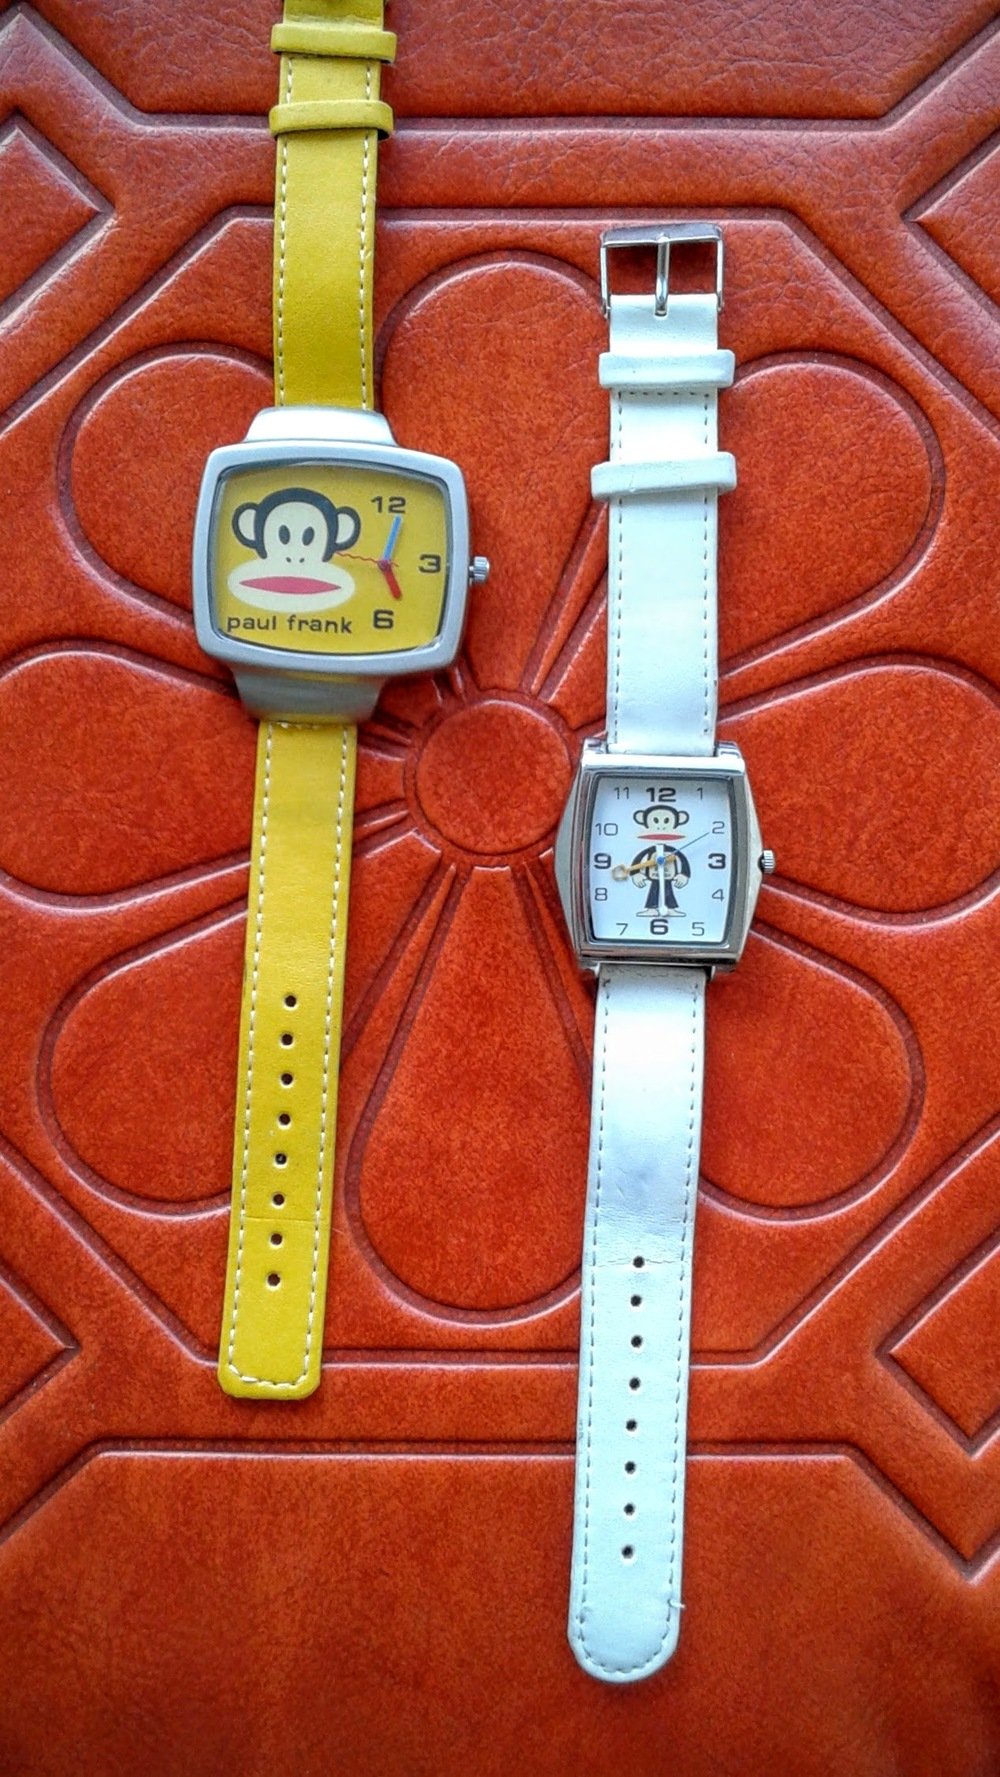 Paul Frank watches: Yellow, $28; White, $26